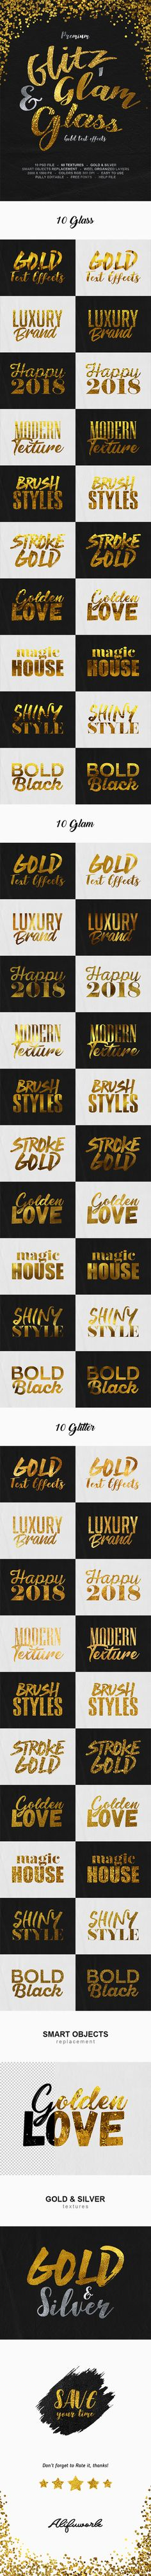 Glitz, Glam & Glass Gold Text EffectsThis graphic resource gives you a quick & easy possibility to apply an high quality gold styl Cool Photoshop, Photoshop Actions, Magazine Titles, Touch Of Gold, Text Effects, Glitz And Glam, Gold Style, Resume Styles, Adobe Photography